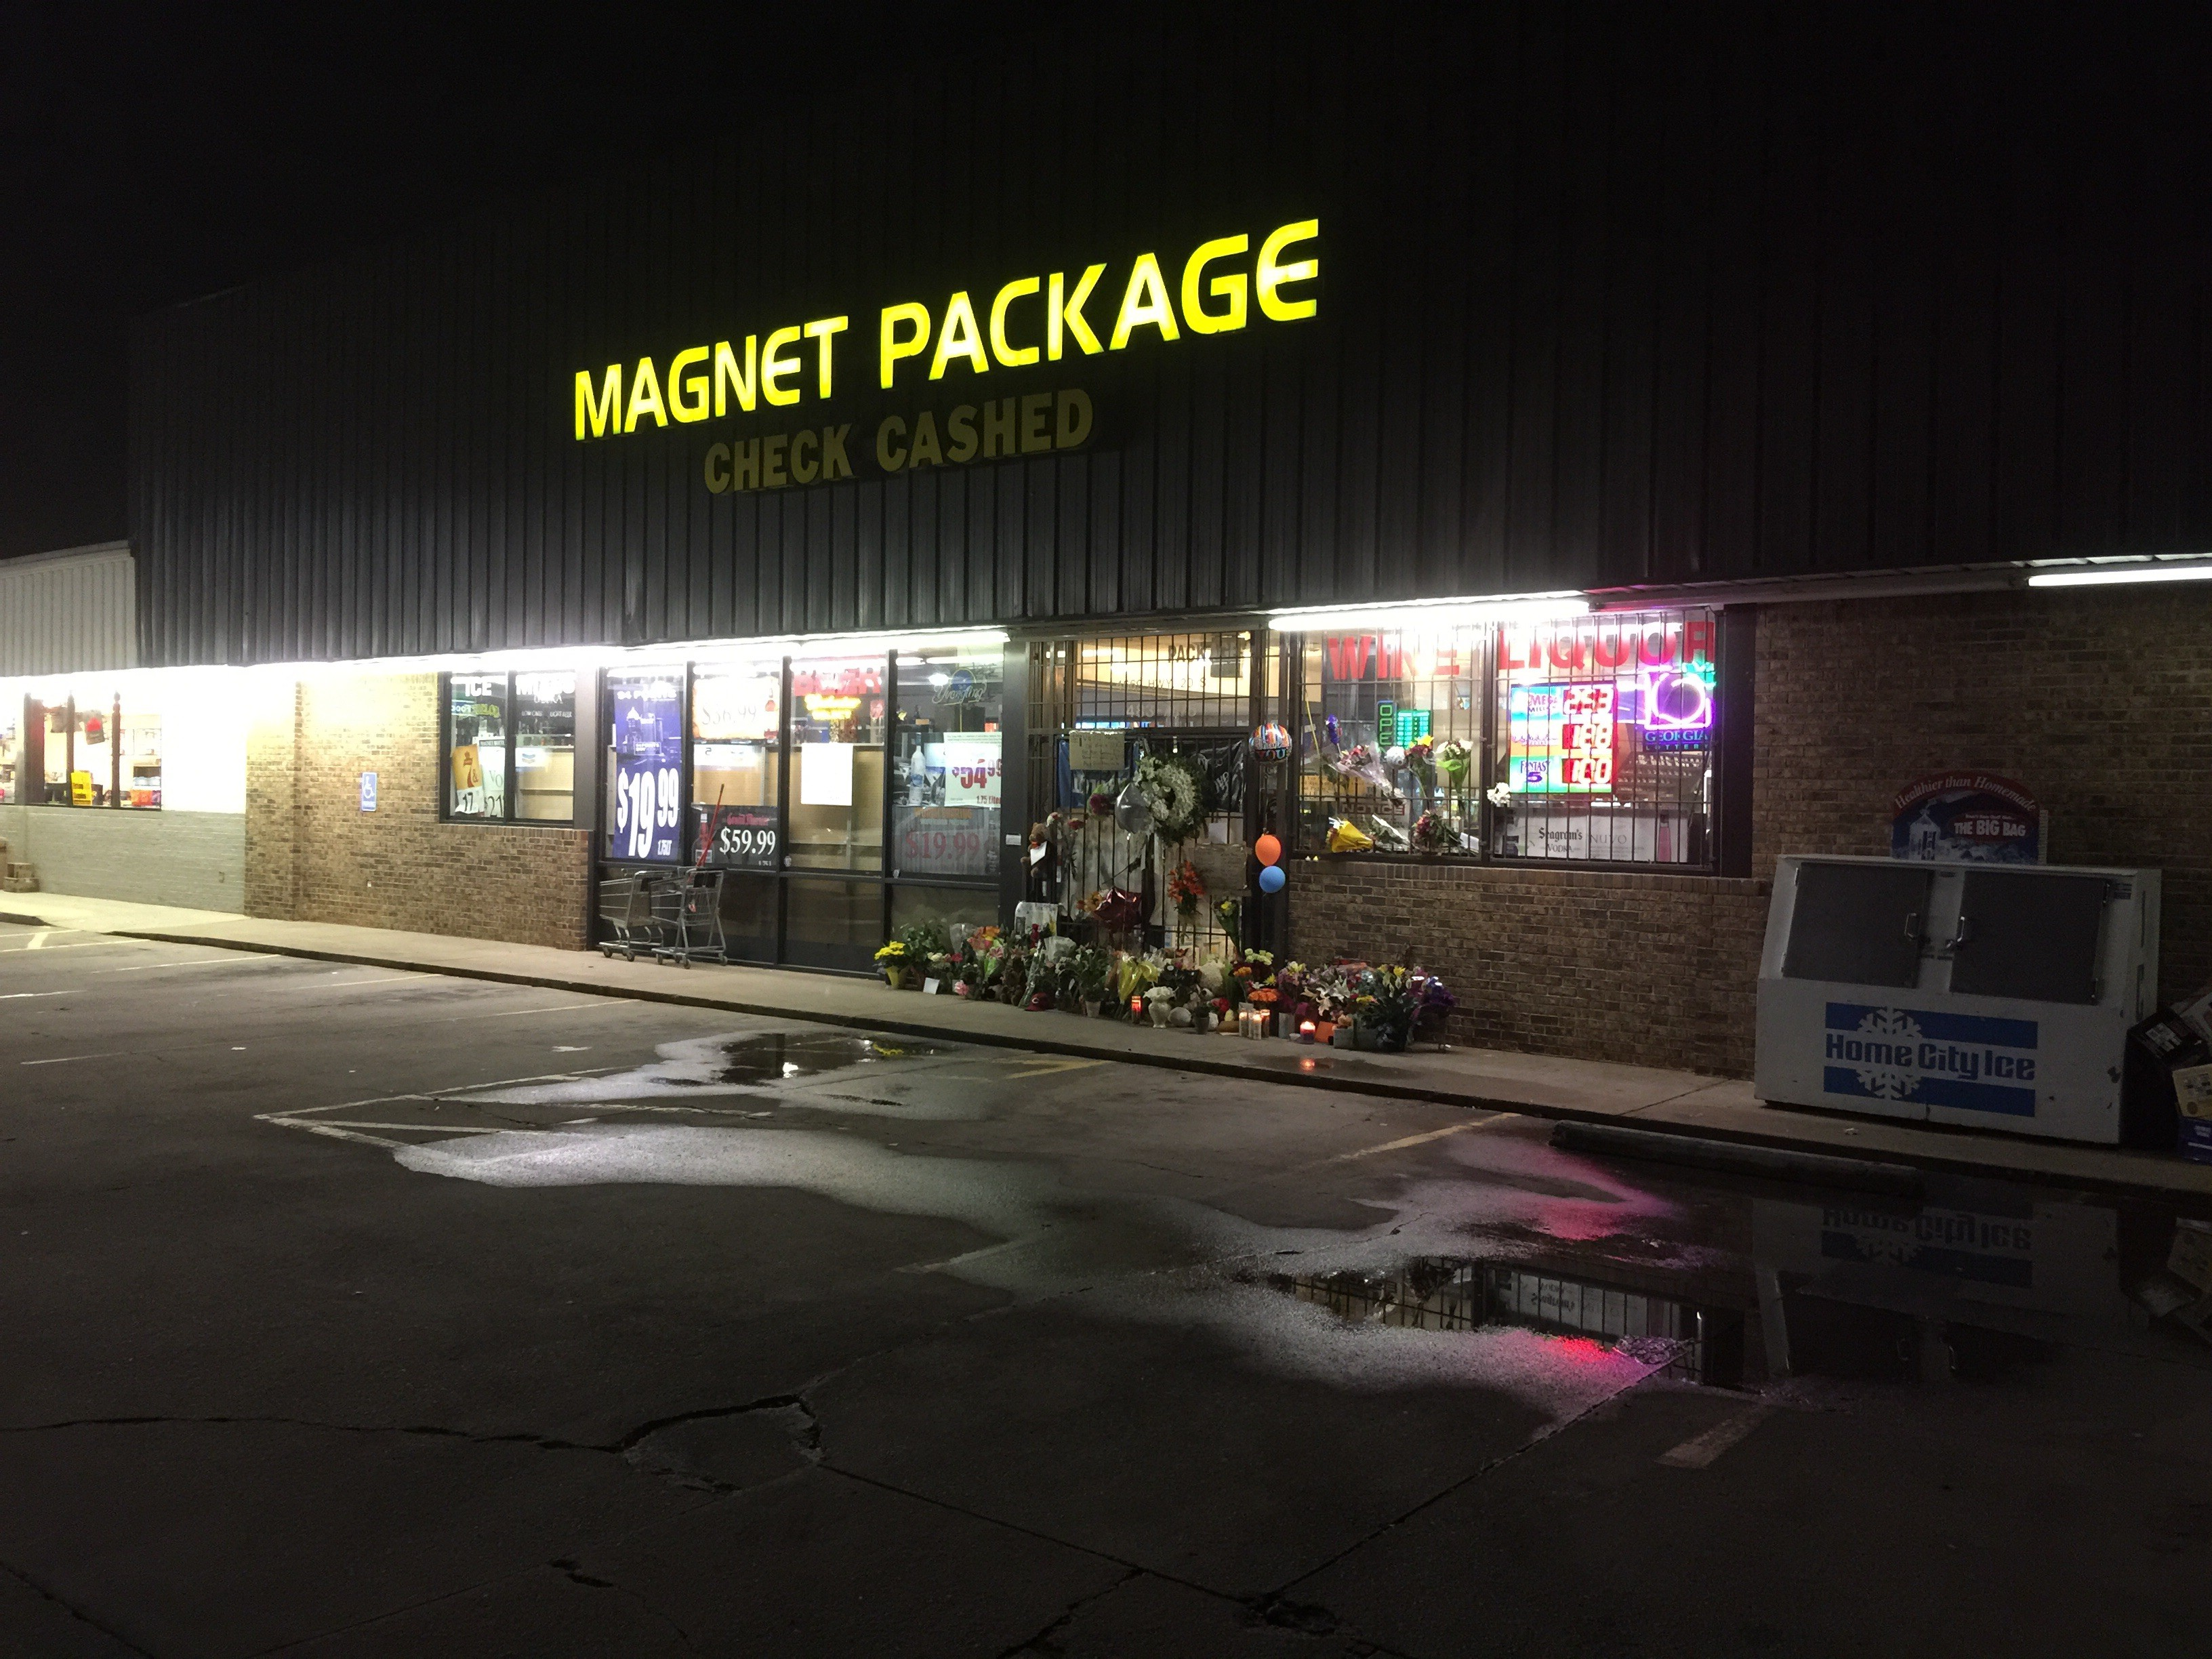 Magnet Package-Man goes on shooting spree, Conyers ga